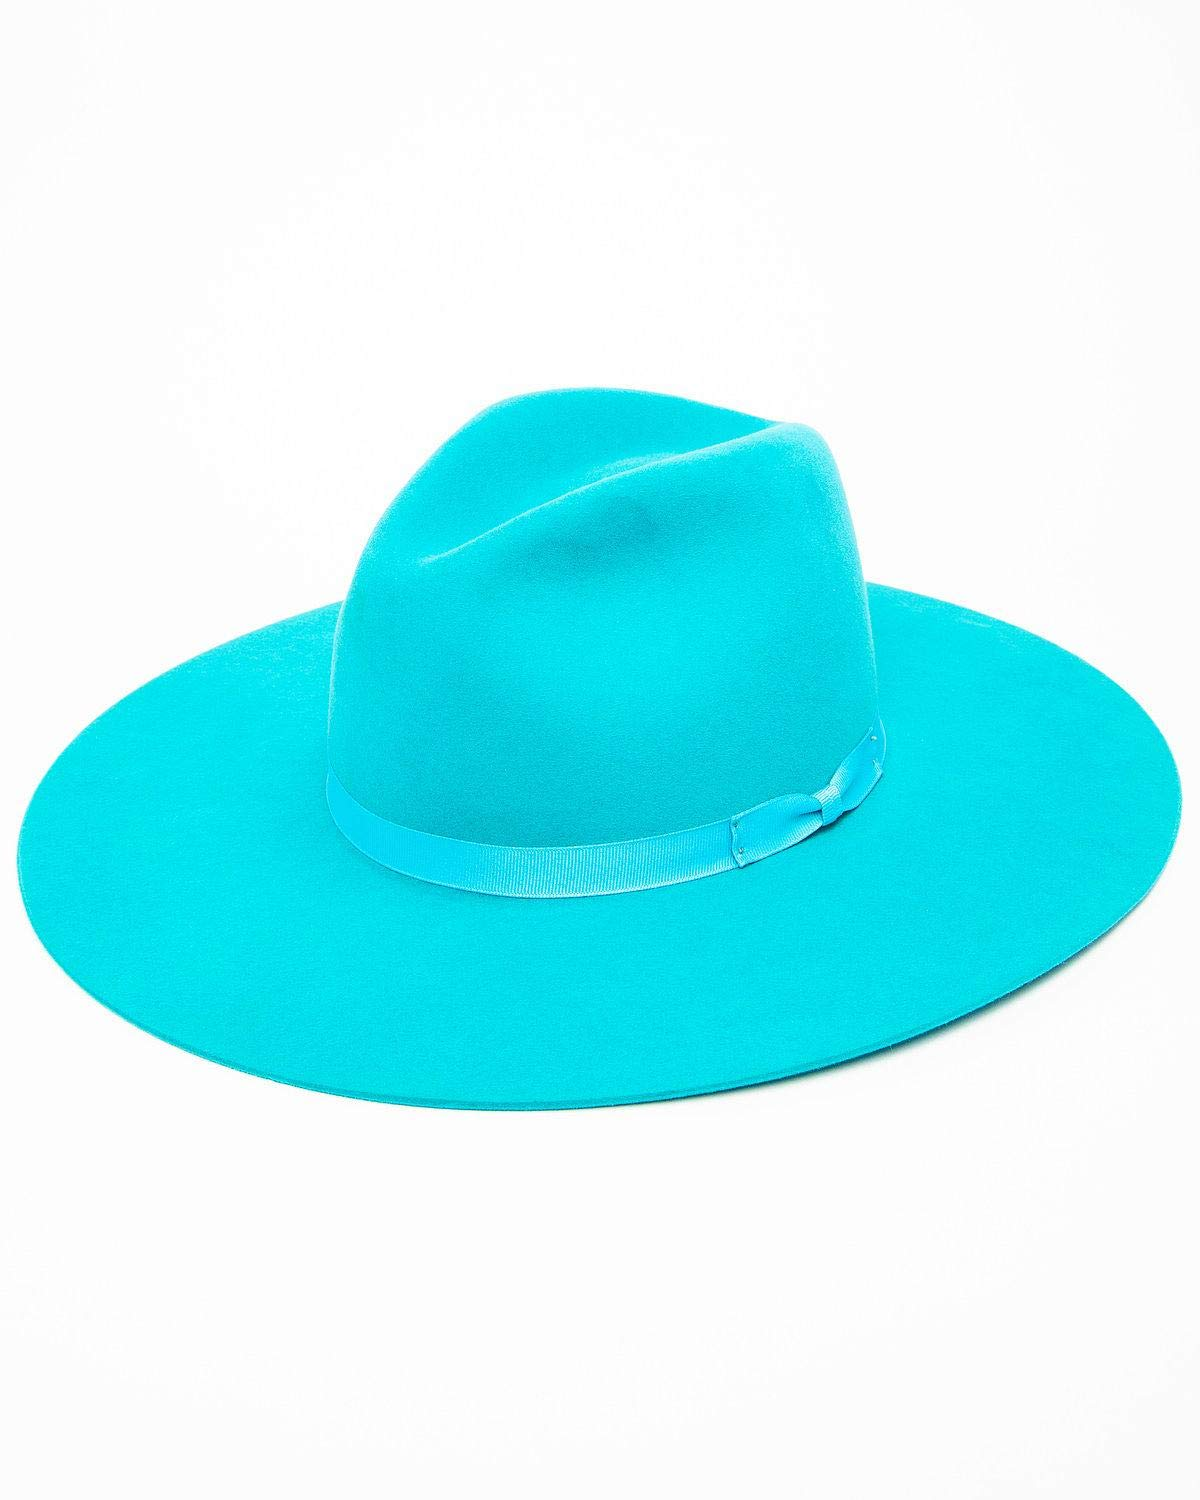 RODEO KING Women's Turquoise 7X Tracker Pinch Front Fur Felt Hat Turquoise 7 3/8